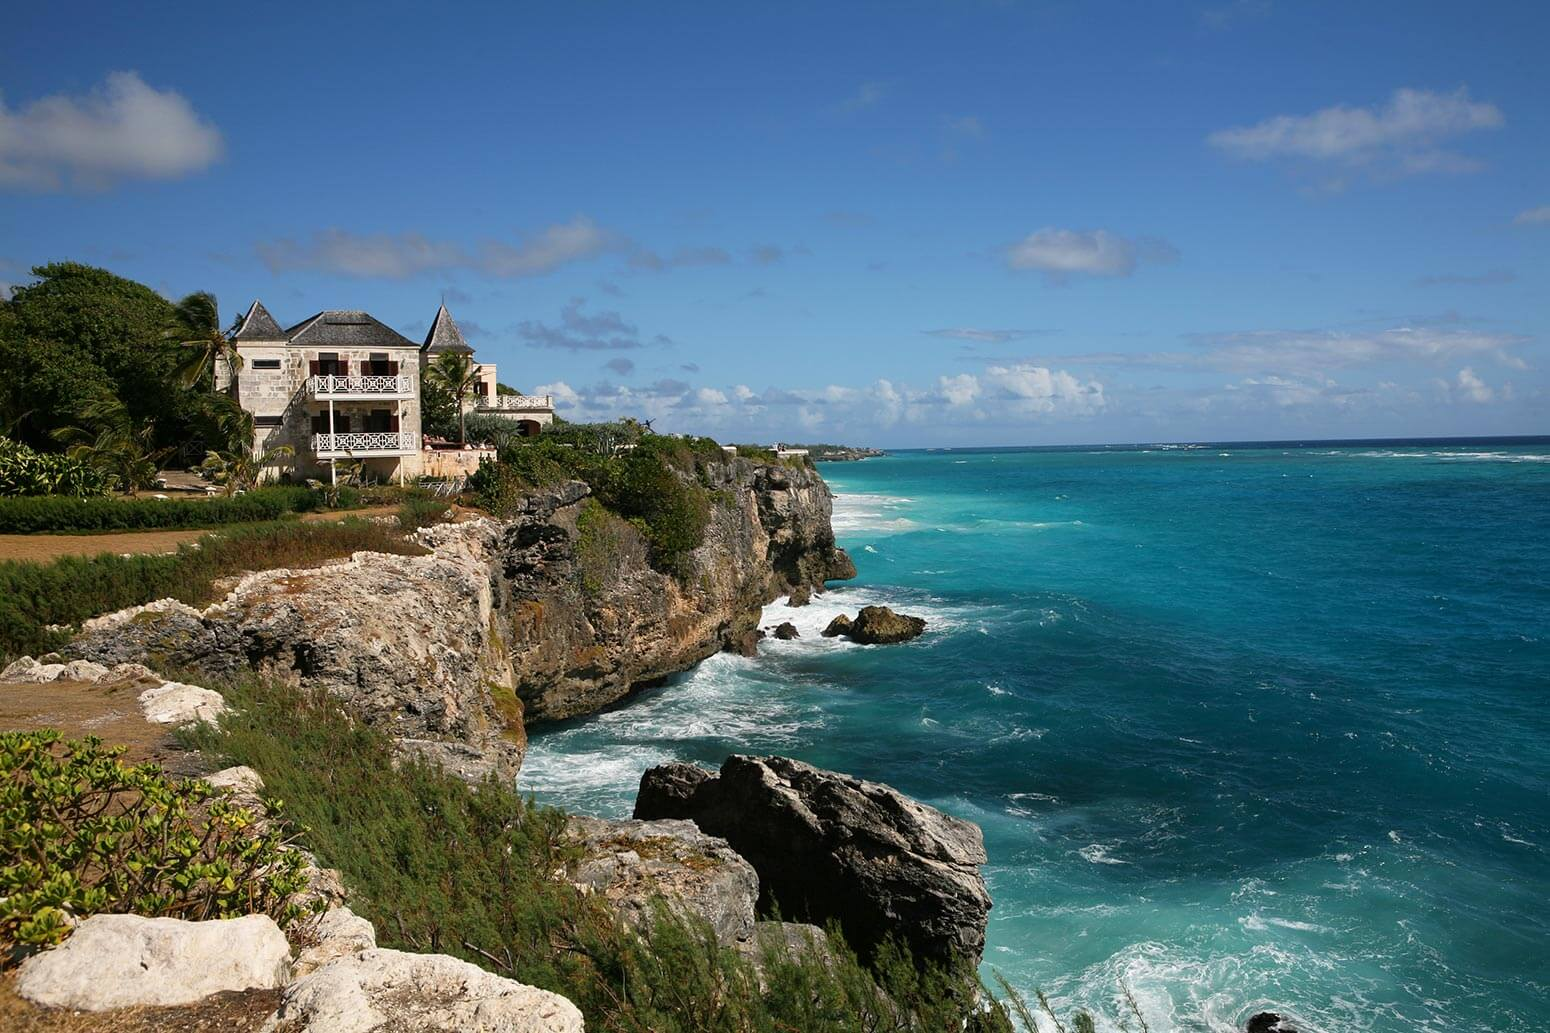 Destination M – The Crane Resort Barbados, Caribbean